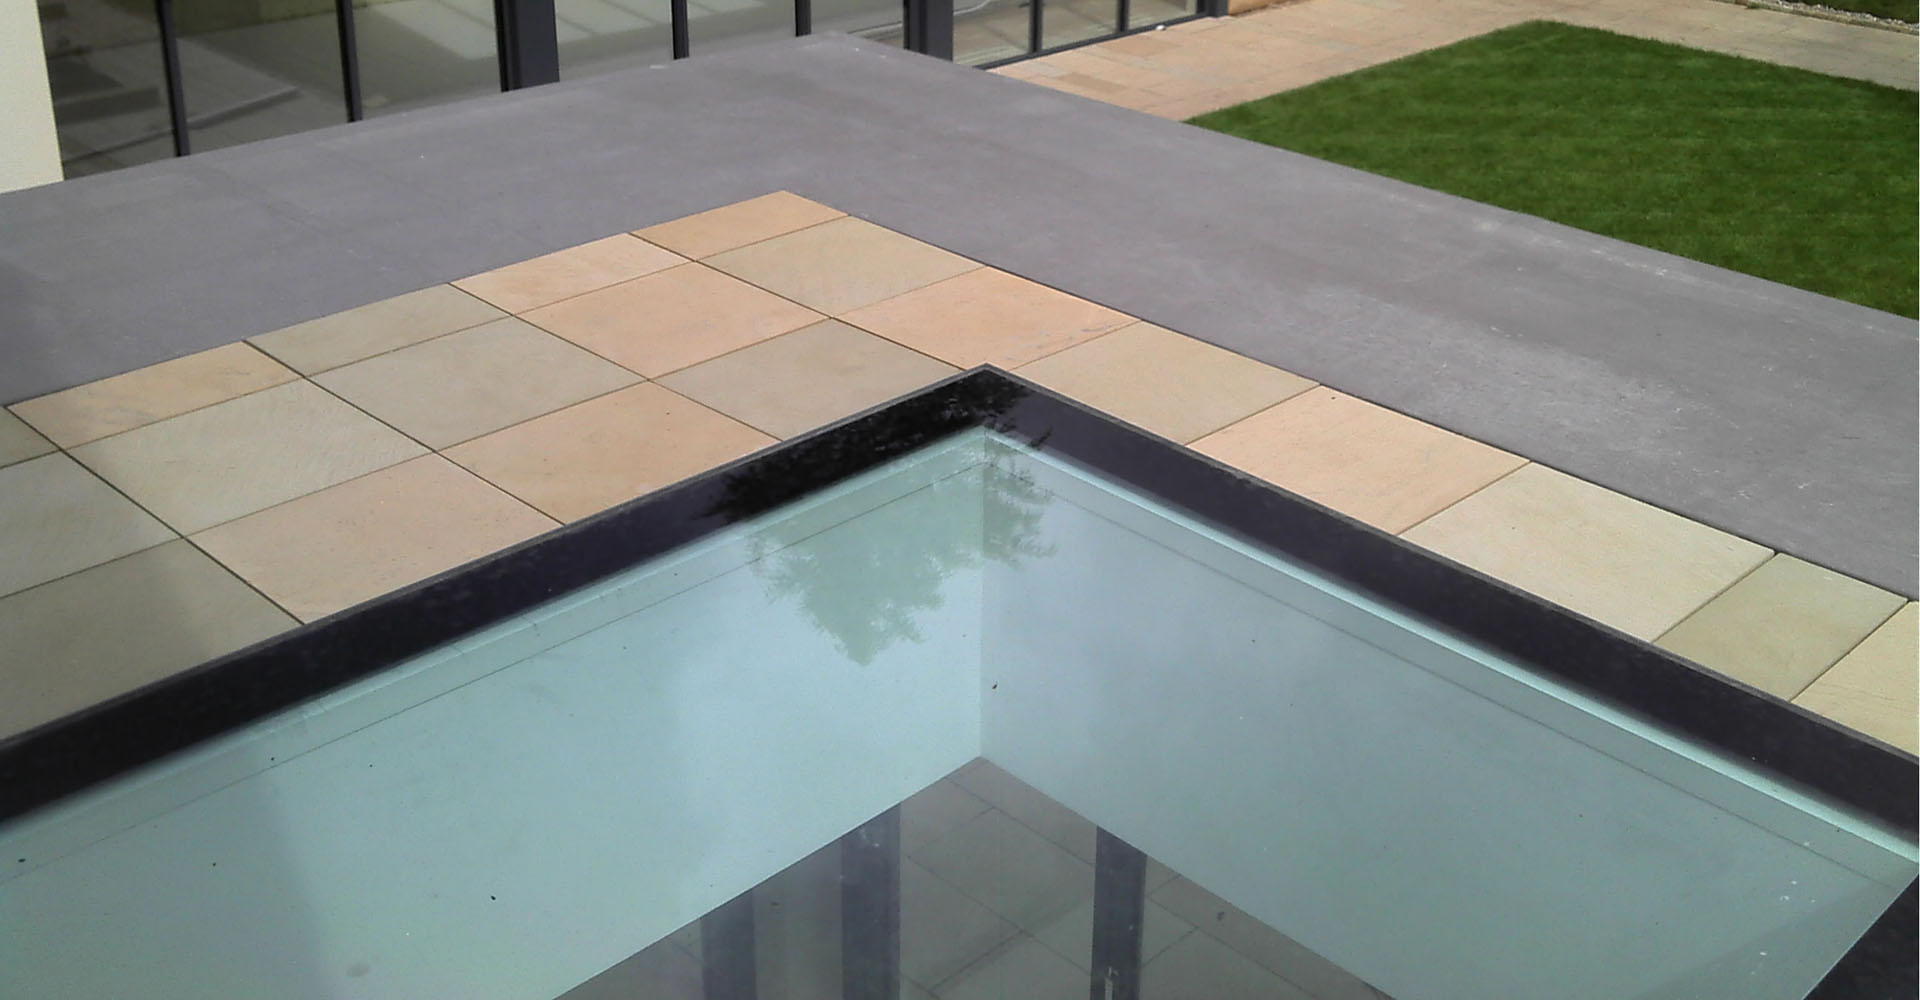 Flush fitted skylight made waterproof